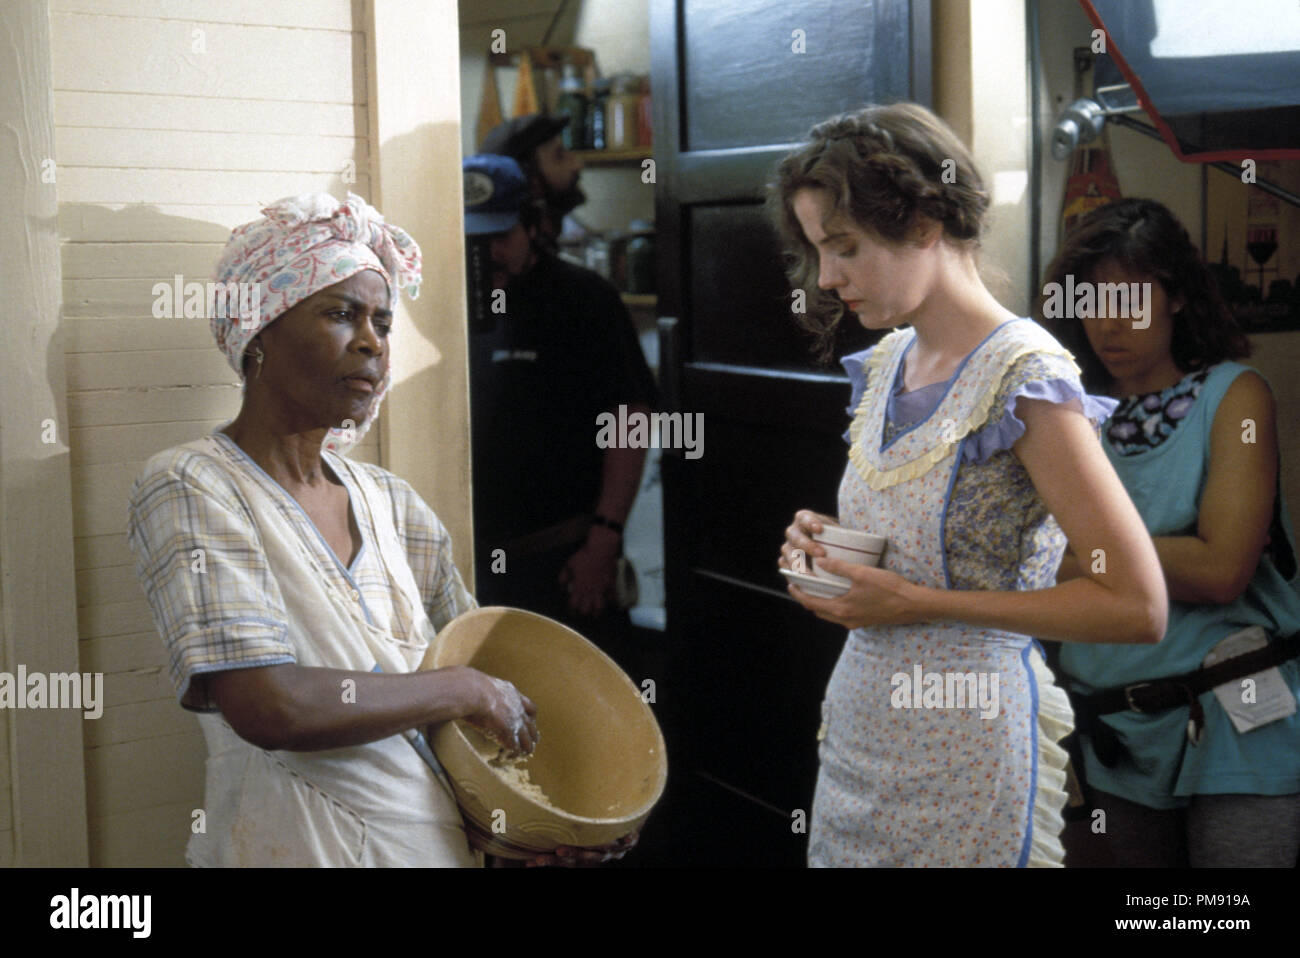 Film Still Or Publicity Still From Fried Green Tomatoes Cicely